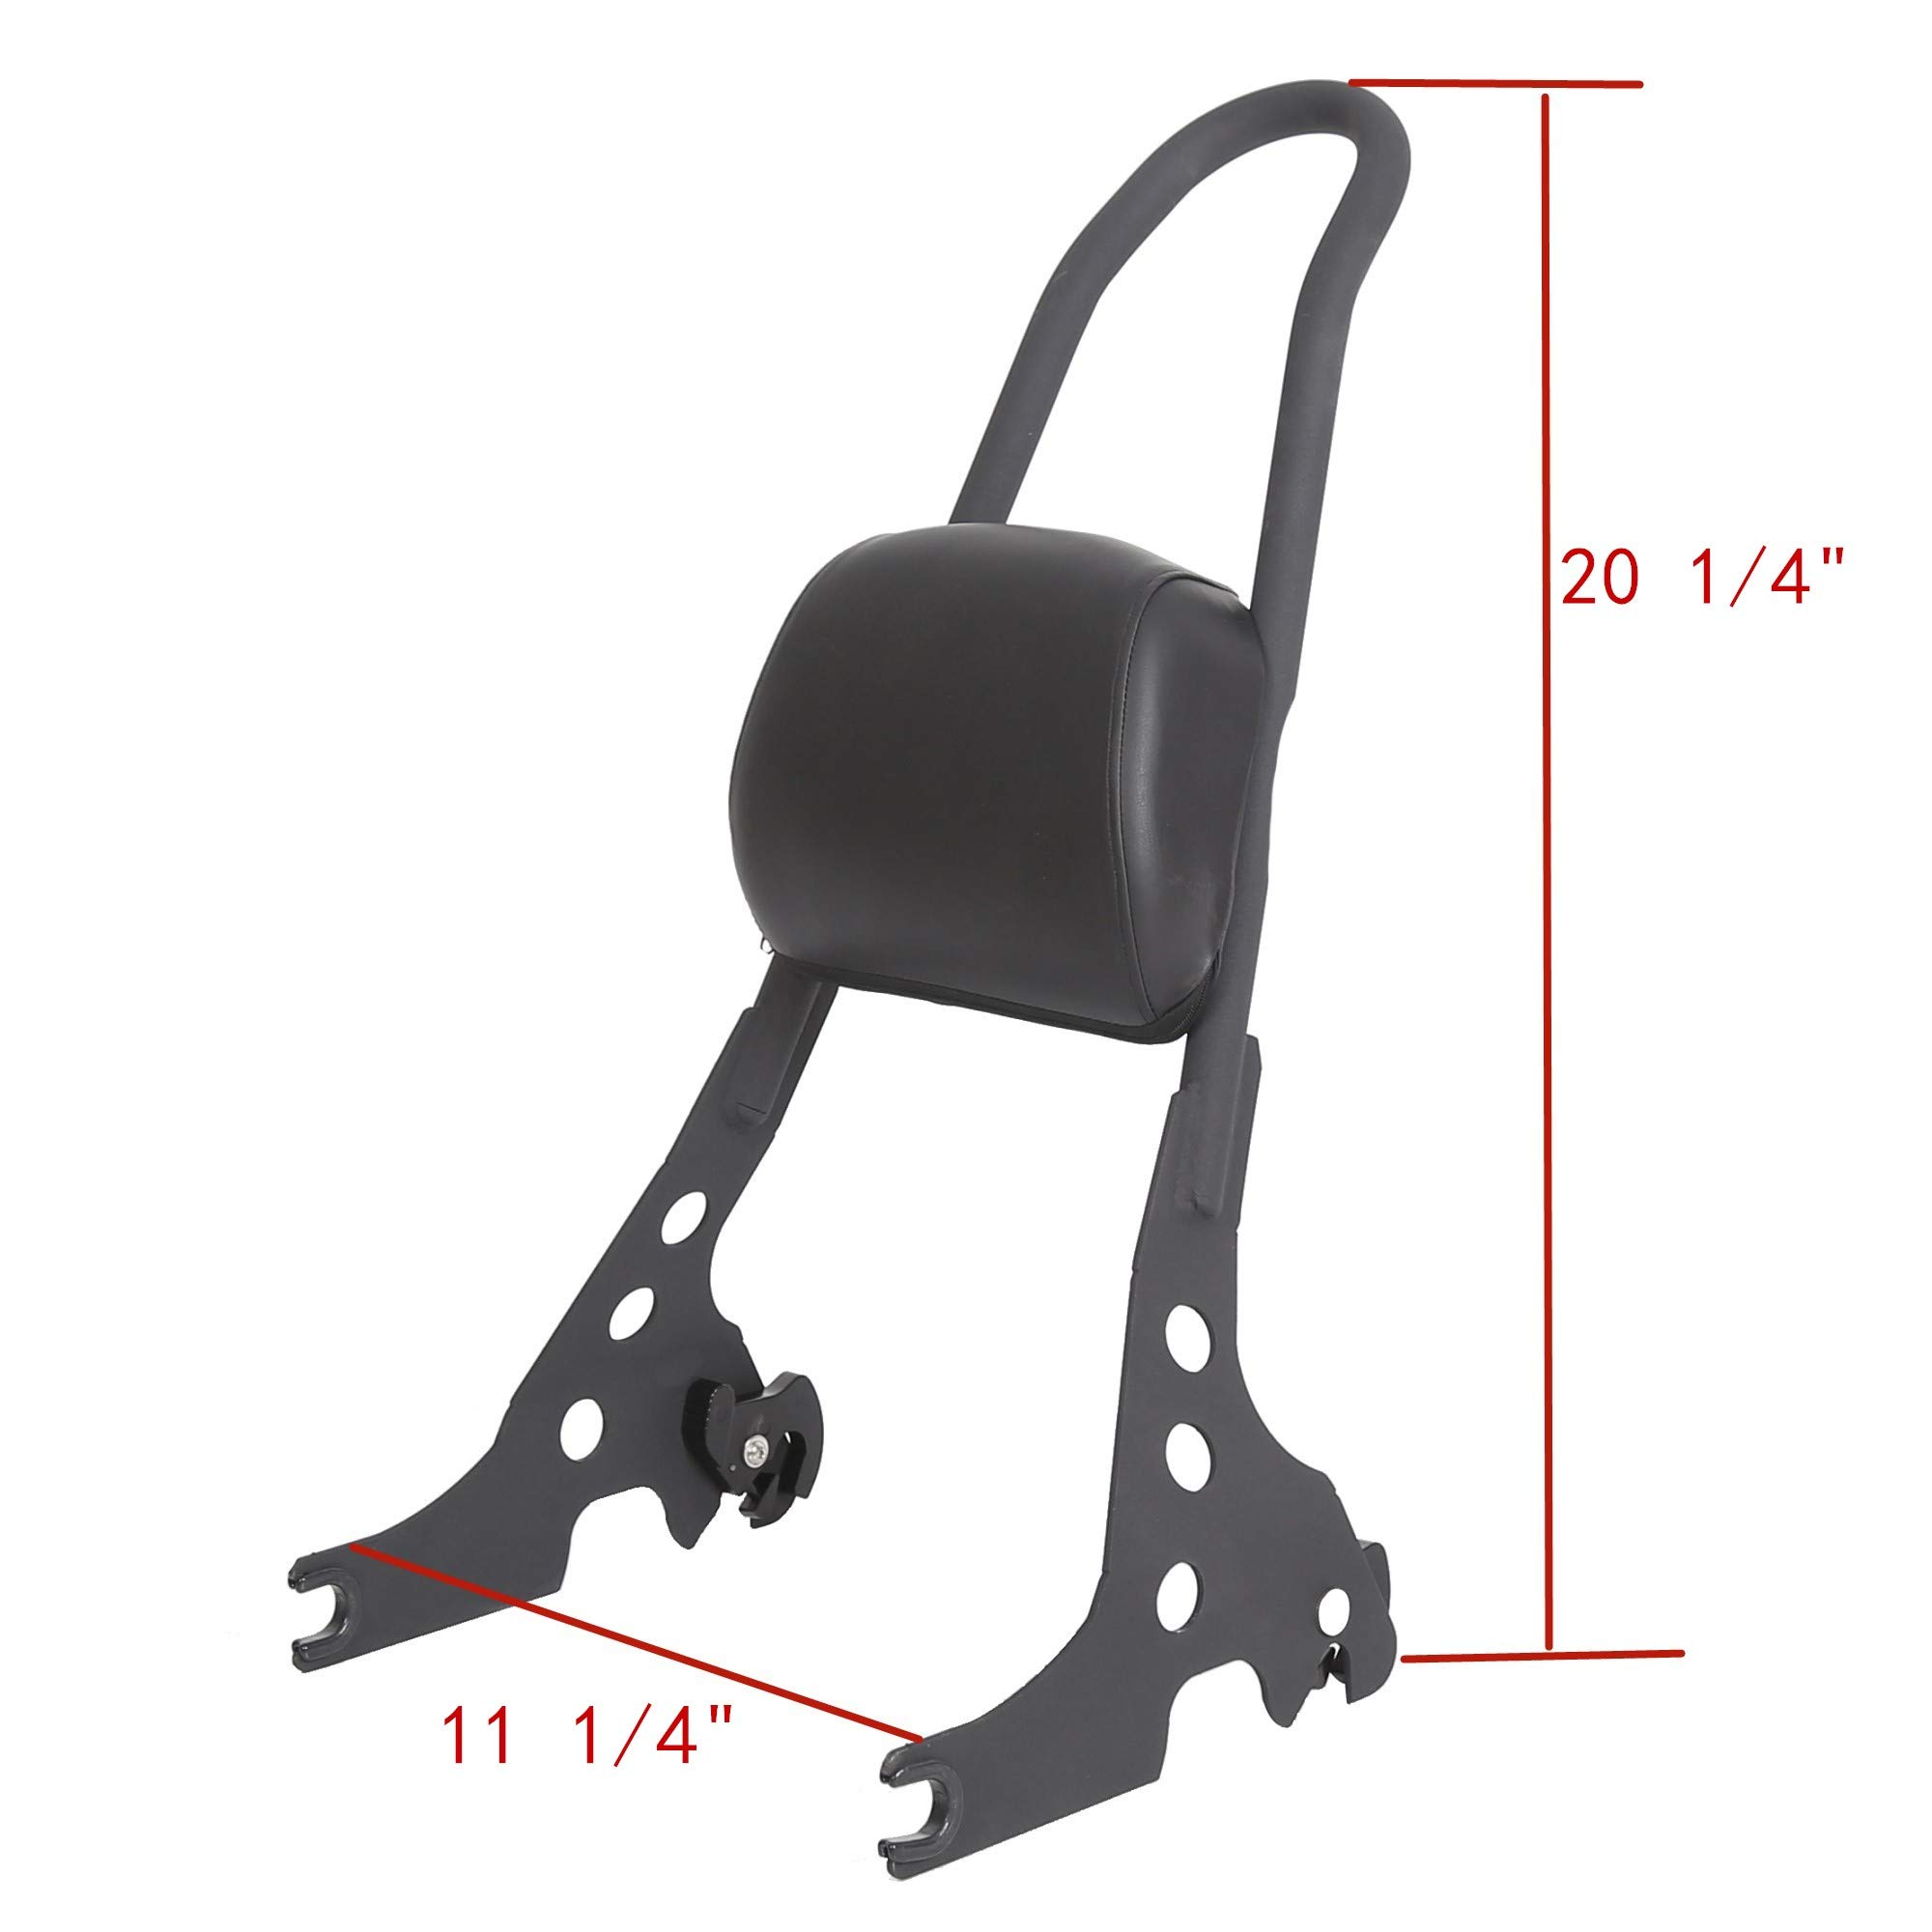 Passenger Backrest Pad Sissy Bar Cushion For Harley Sportster XL XLH 883 1200 Black by ECOTRIC